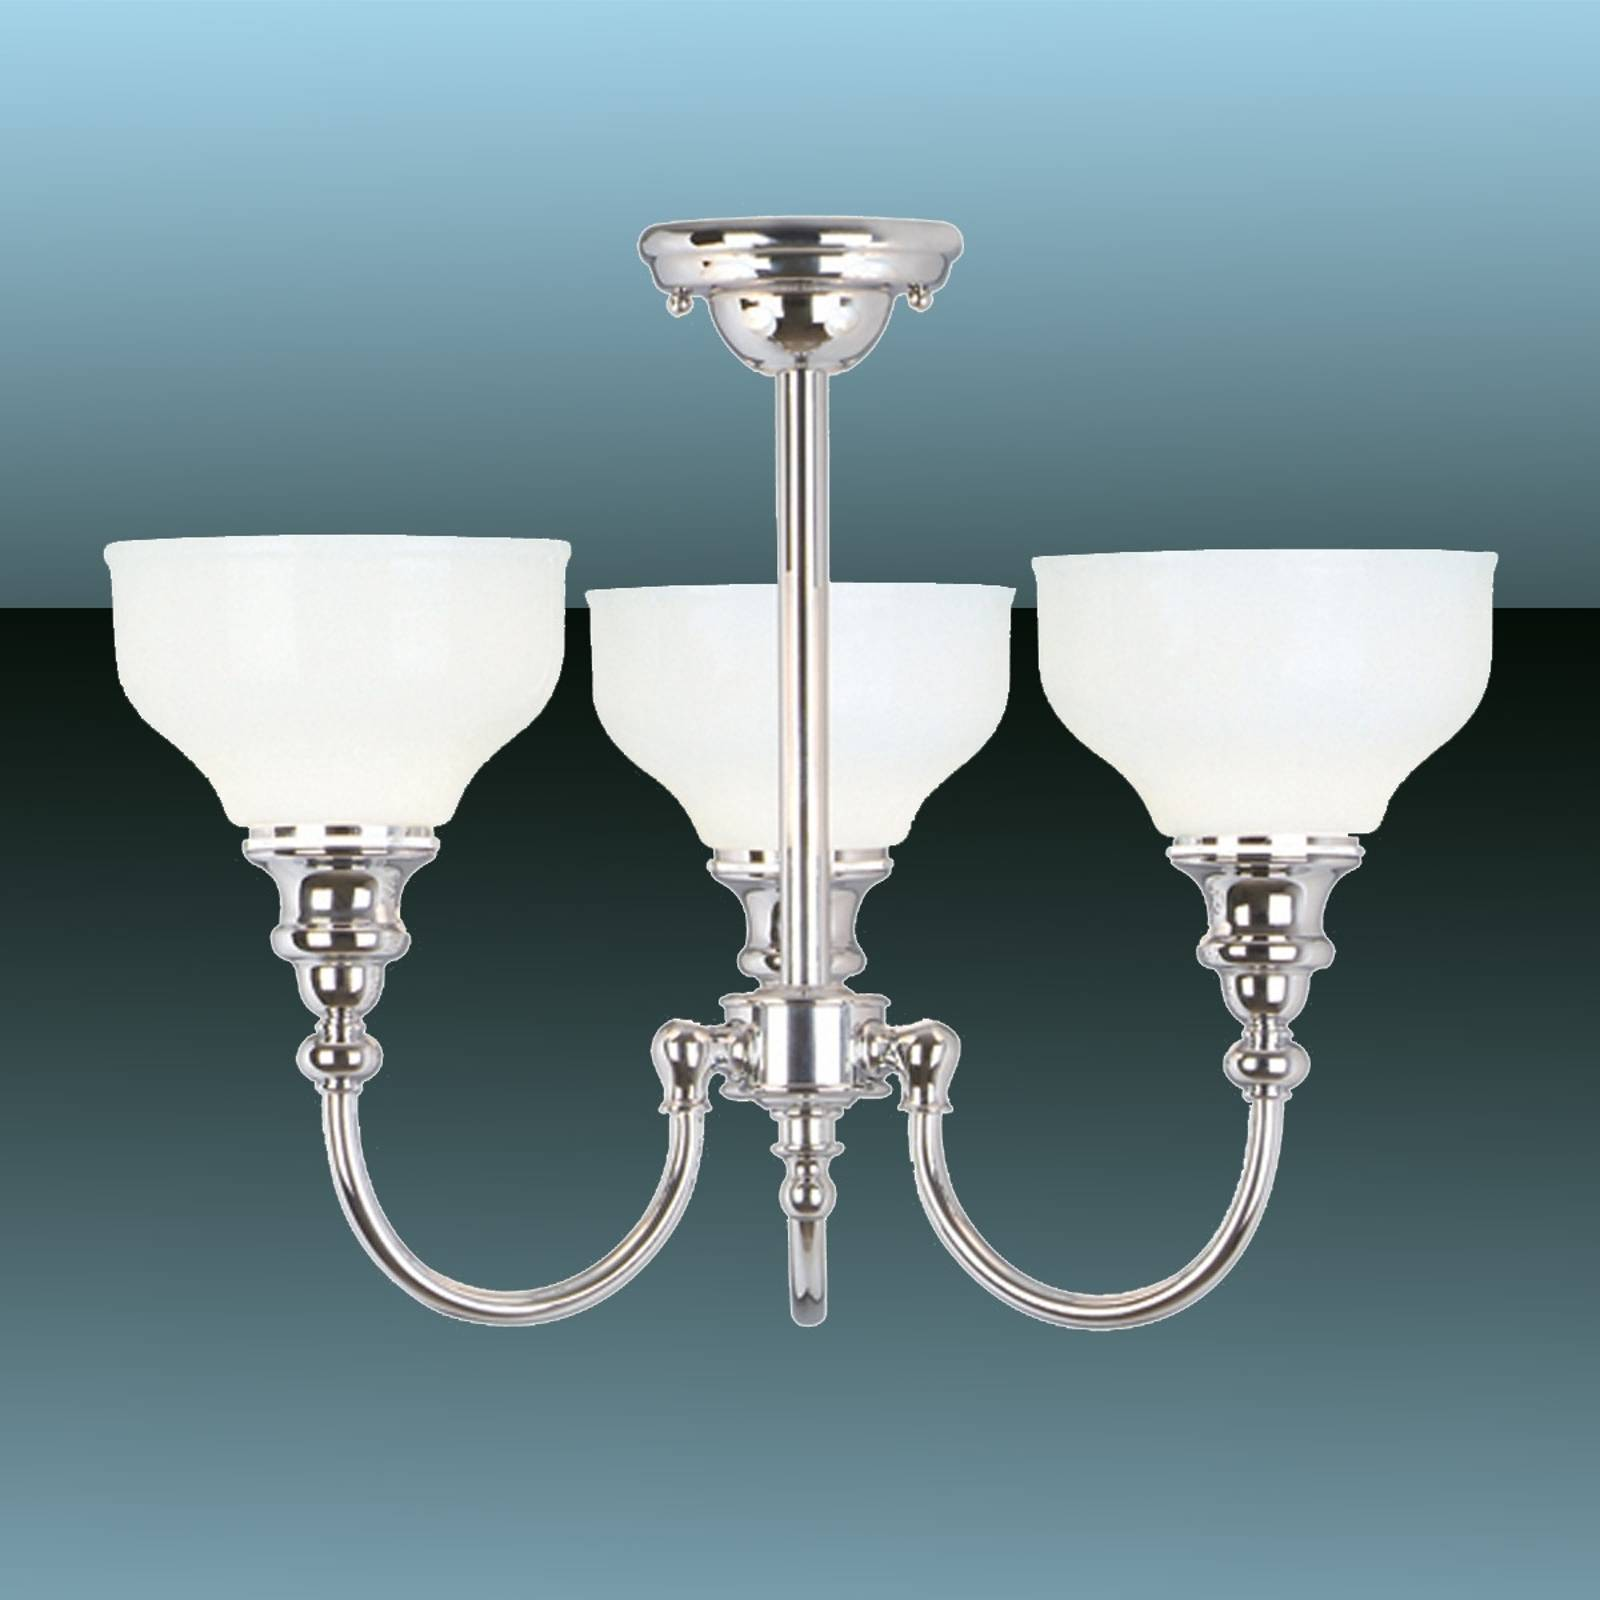 Cheadle Bathroom Ceiling Light Three Bulbs from Elstead